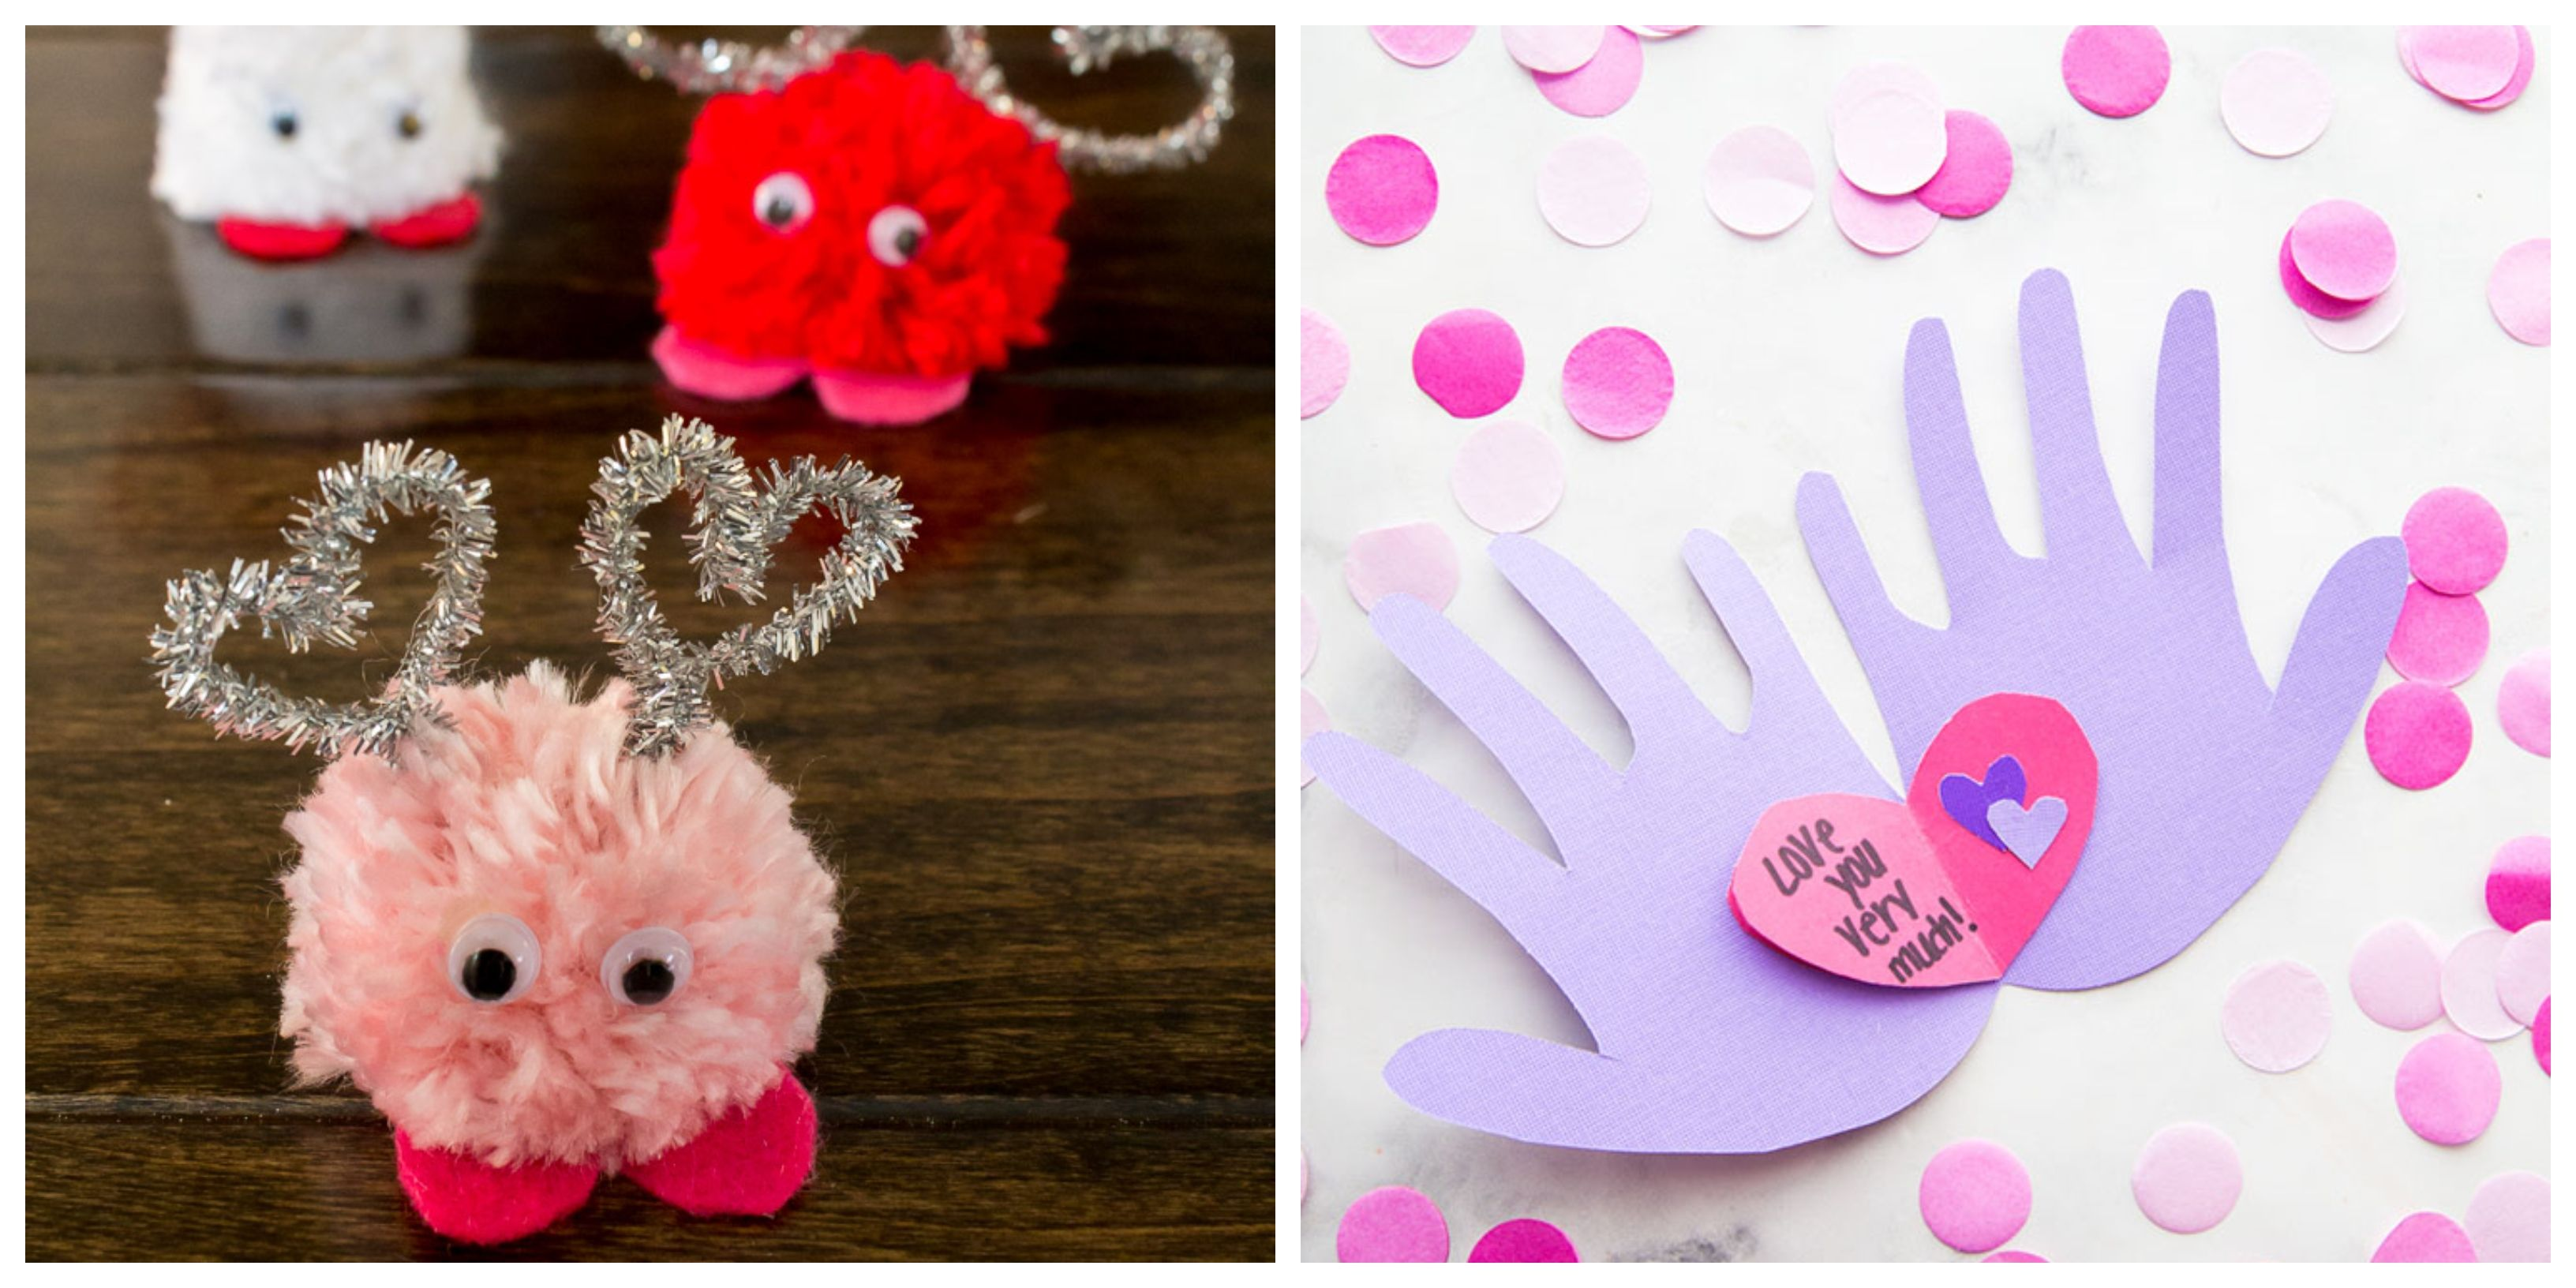 Your Kids Will Heart These Easy Valentine's Day Crafts